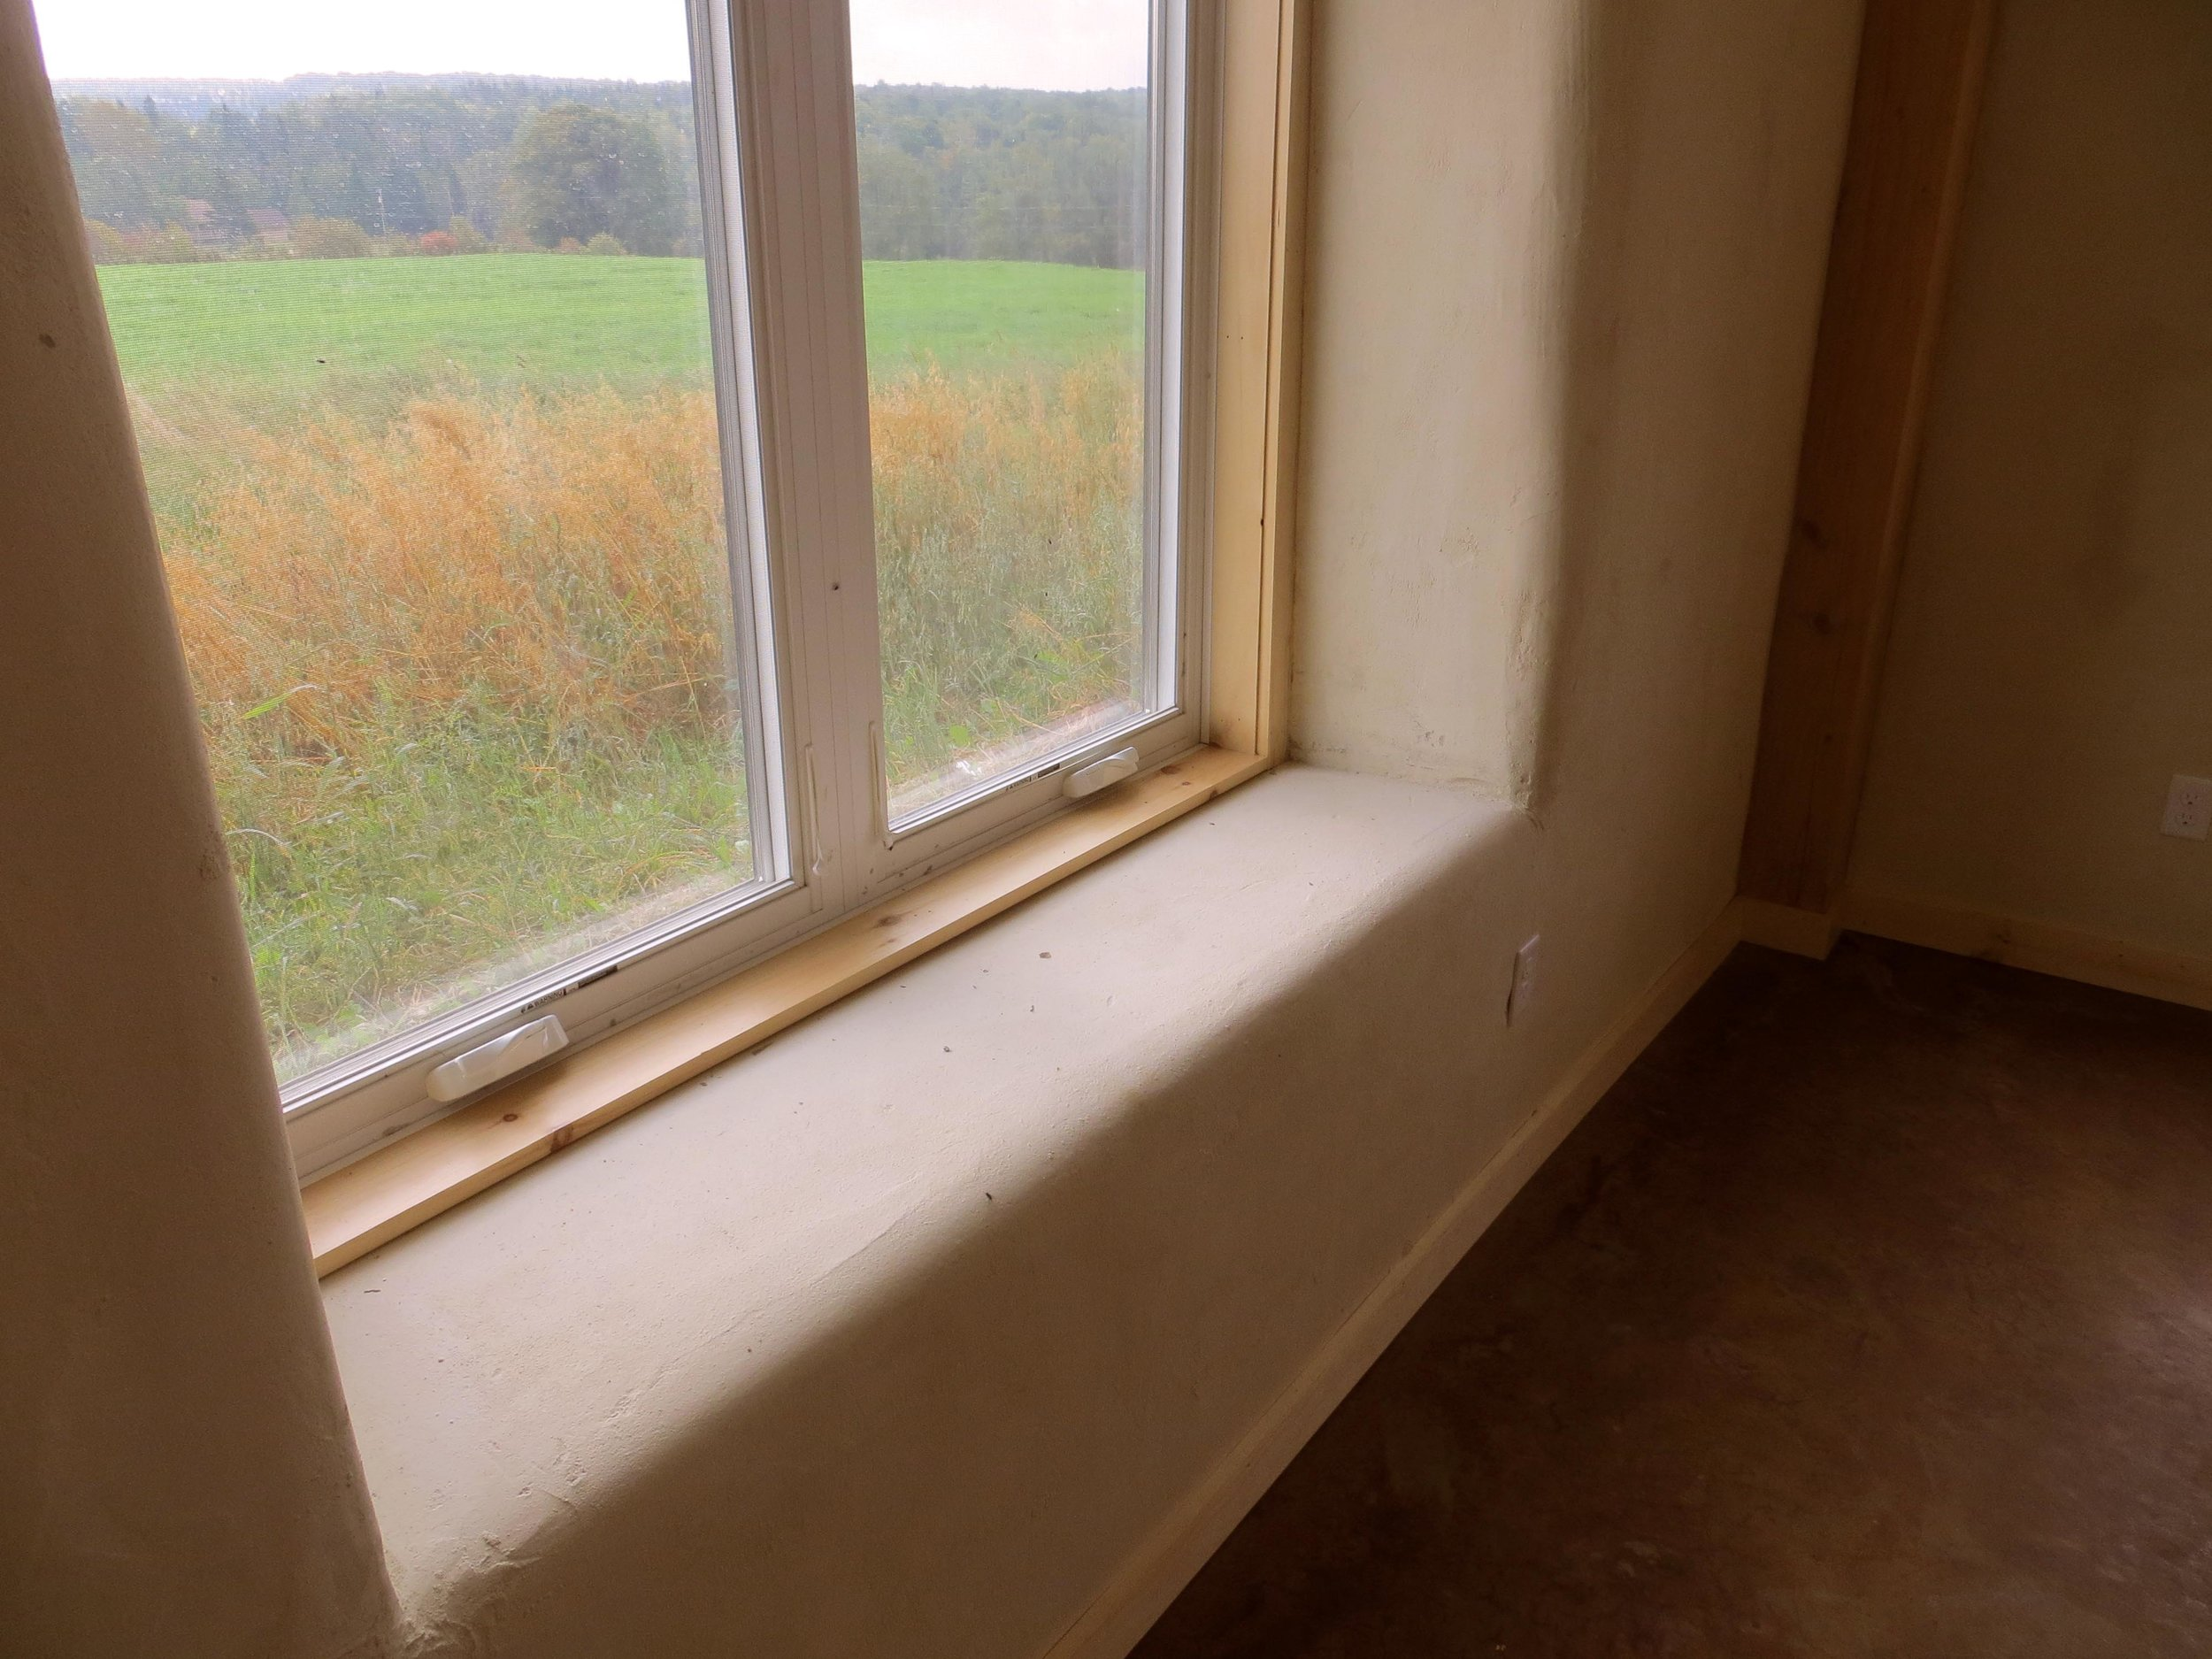 The rounded edge of the window sill belies the presence of straw-bales below